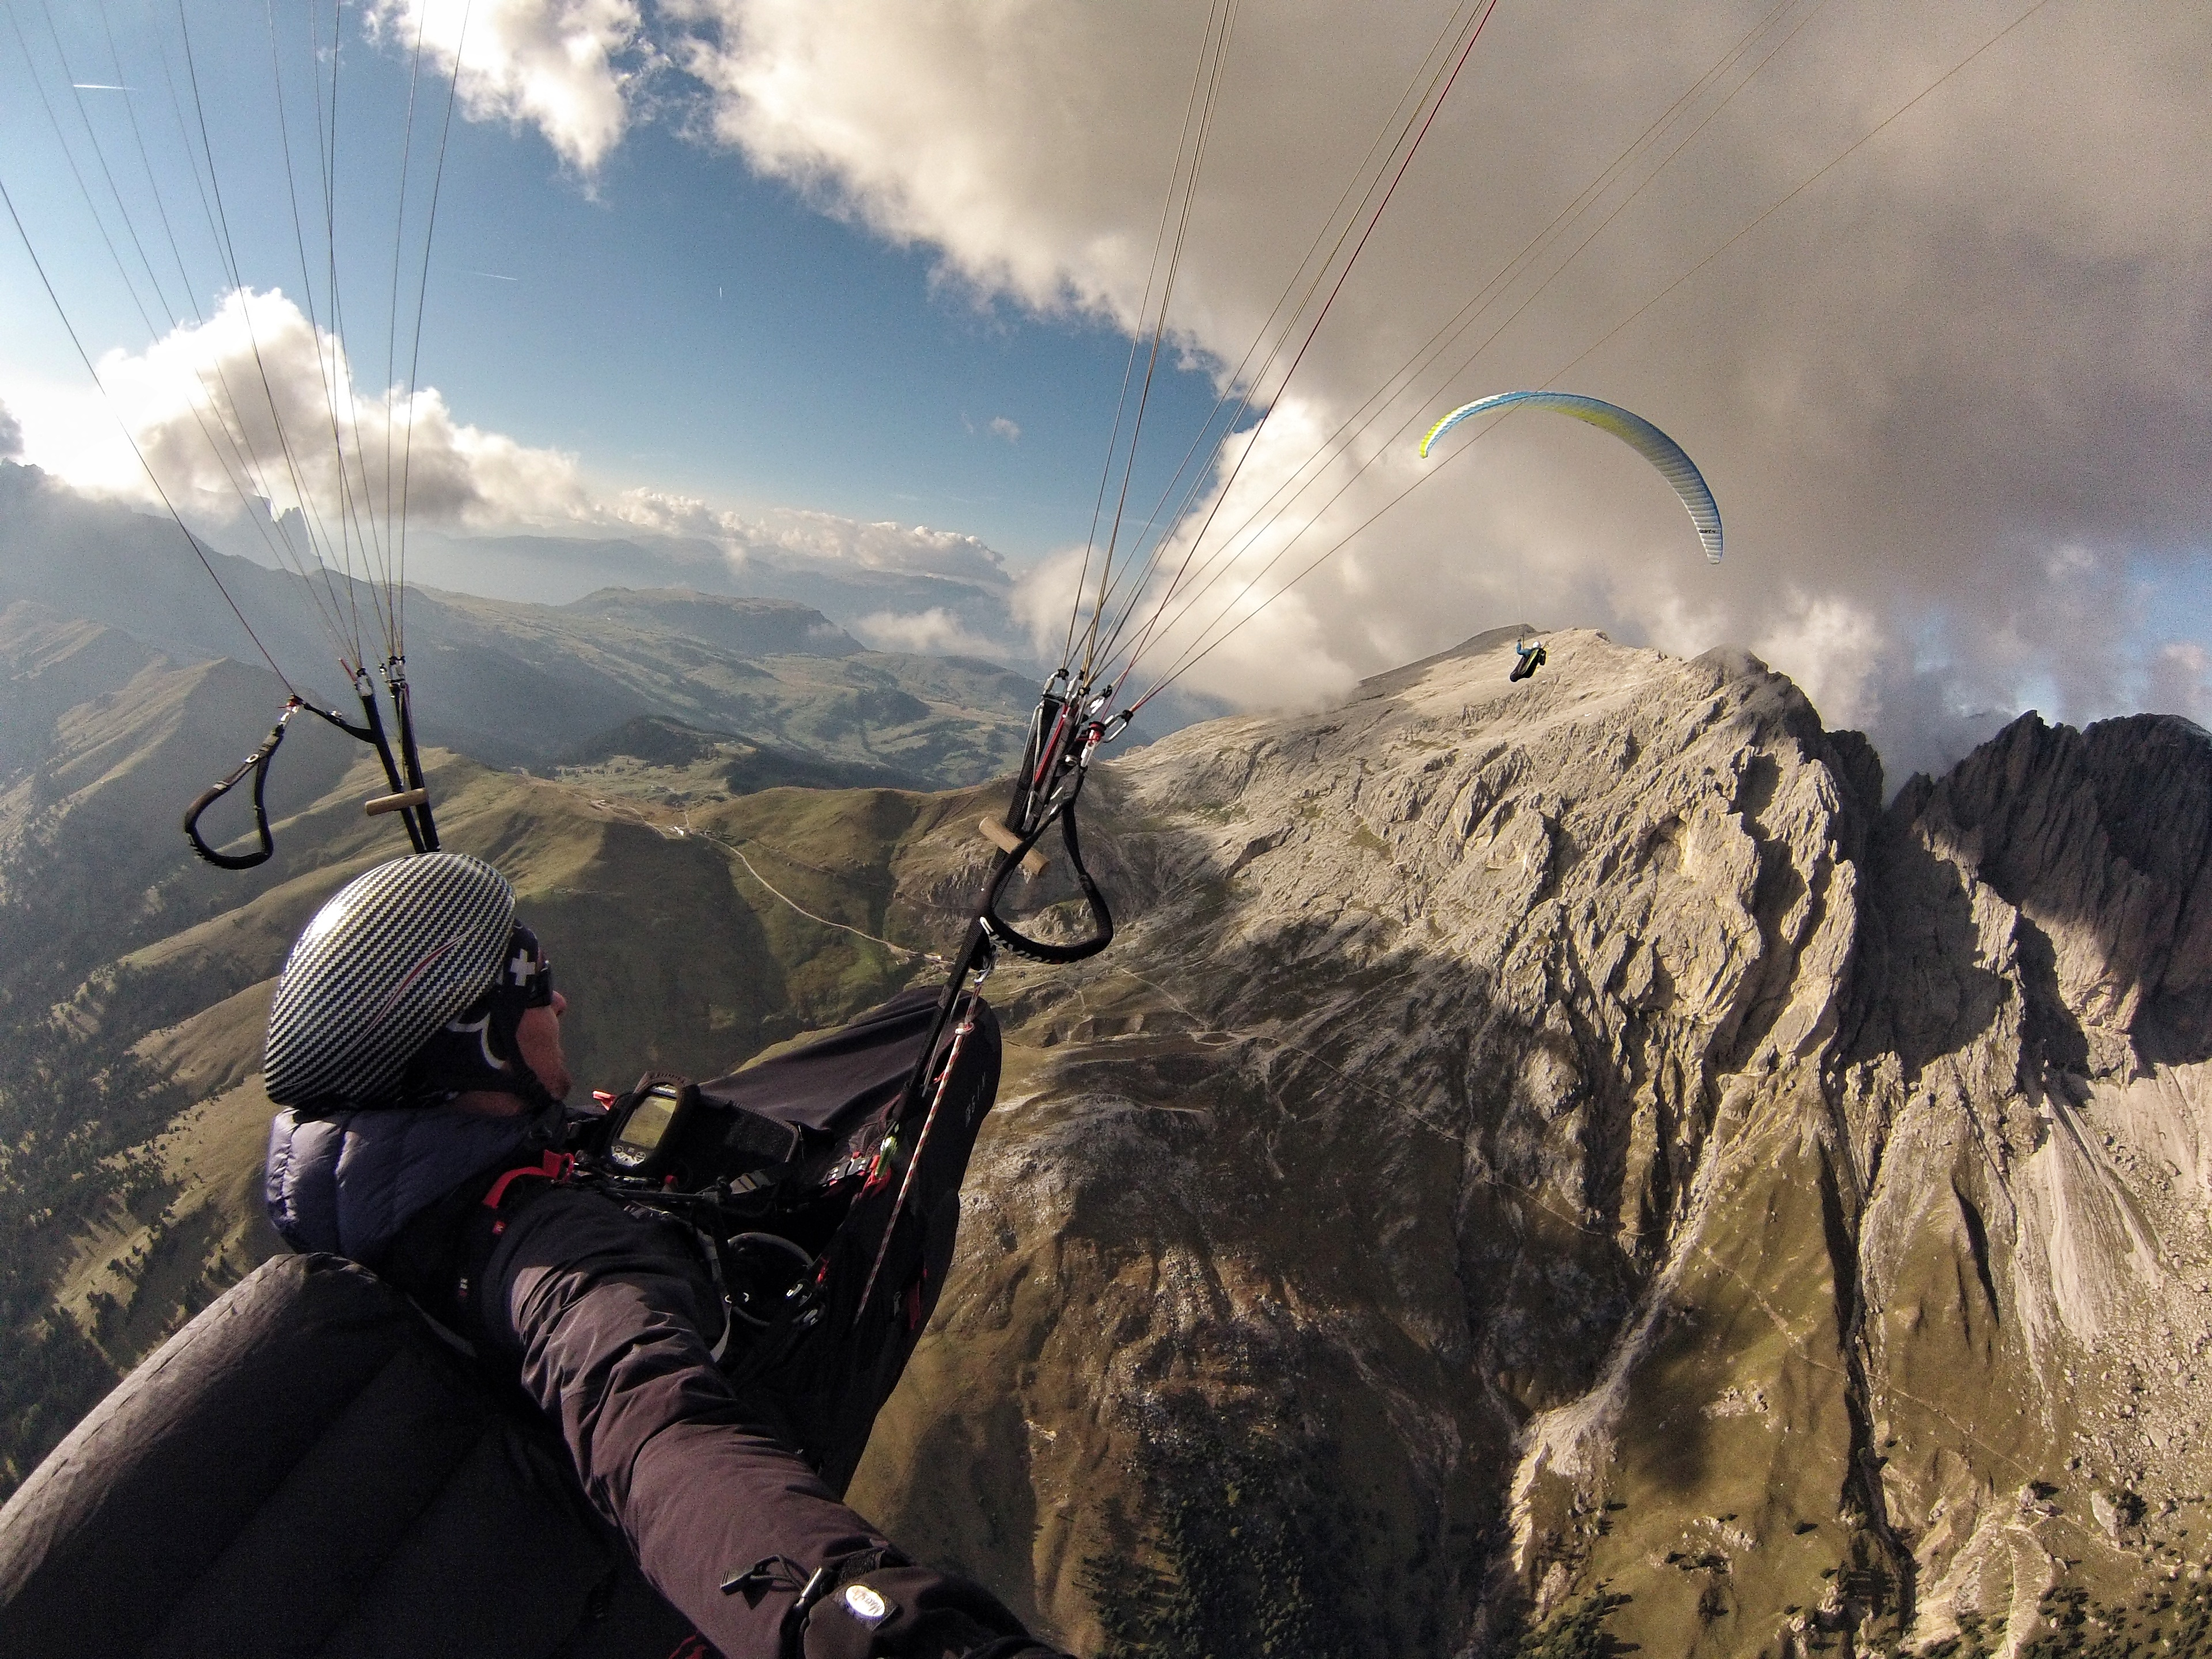 Arnaud at the World cup paragliding Superfinal by